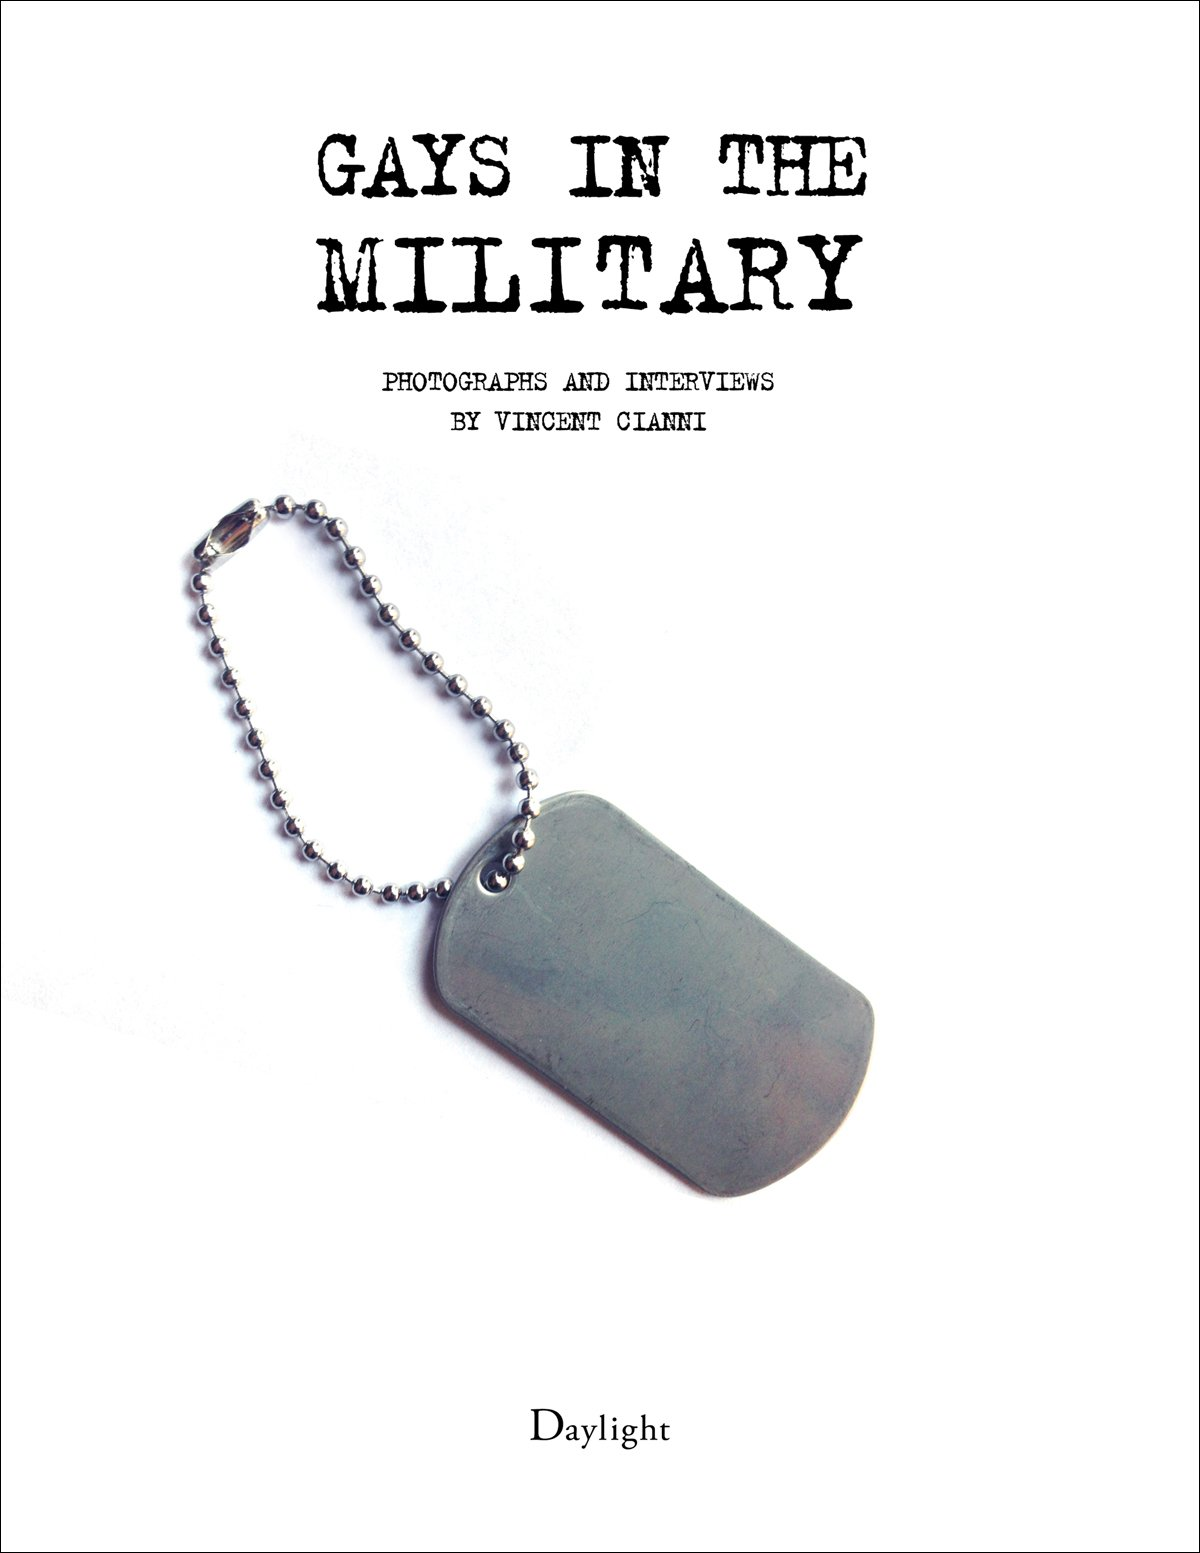 Essay on following orders in the military Gays military research papers